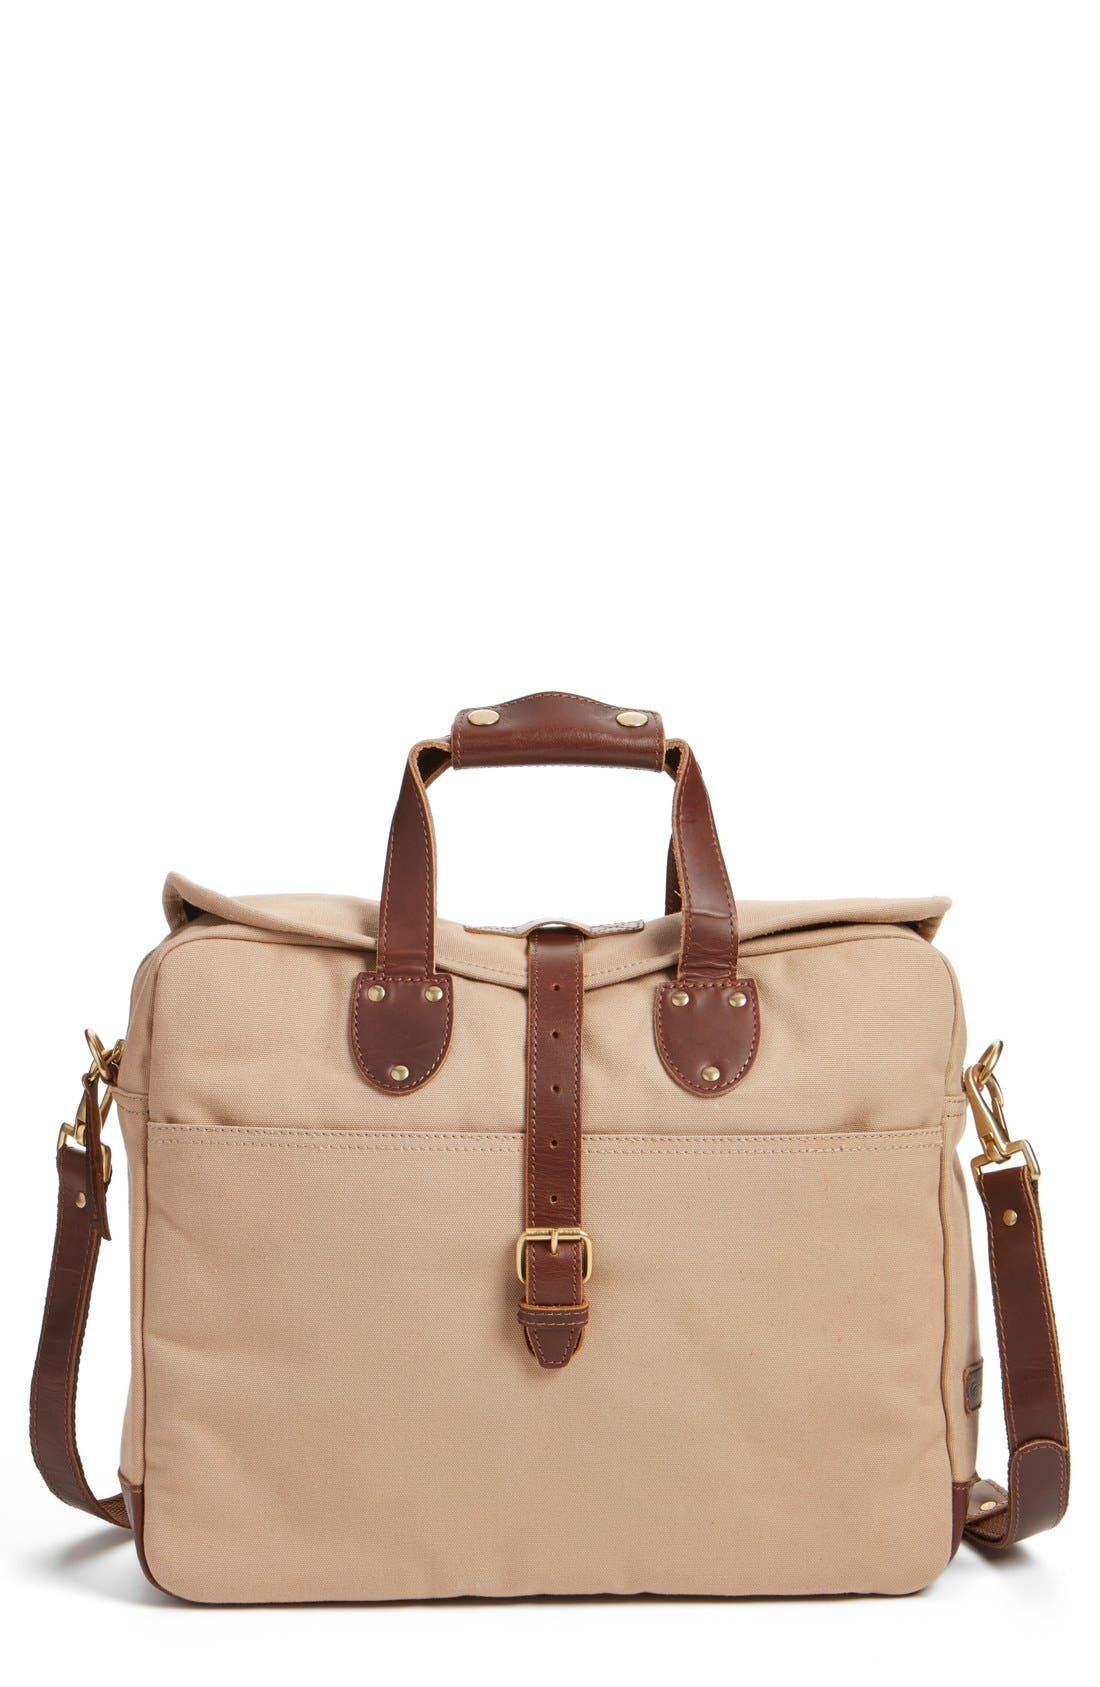 'Lakeland' Laptop Bag,                         Main,                         color, Tan